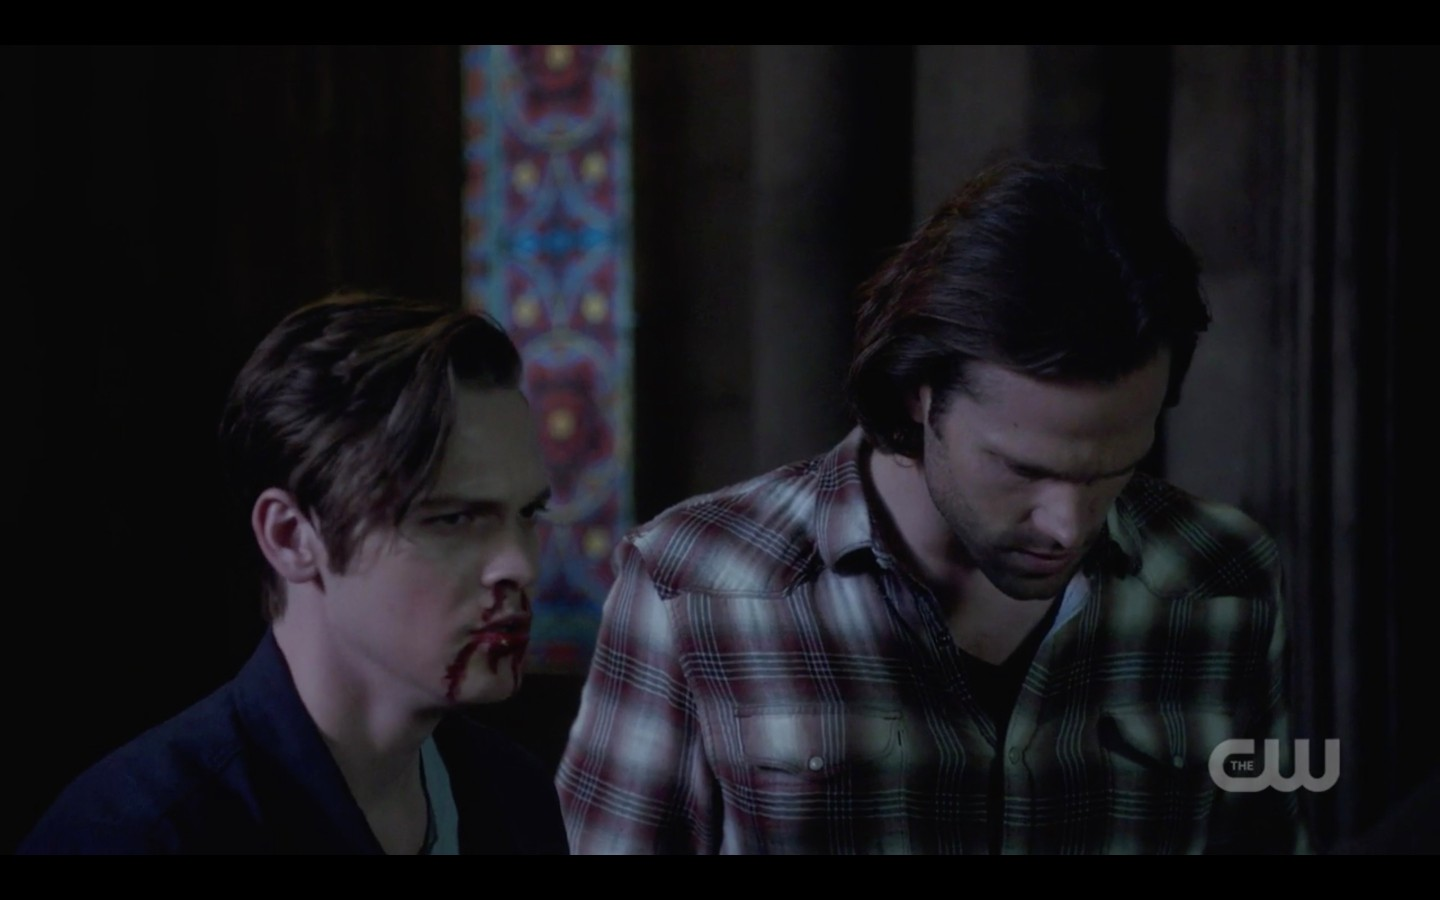 supernatural sam winchester sad that dean is gone with bloodied jack 2018